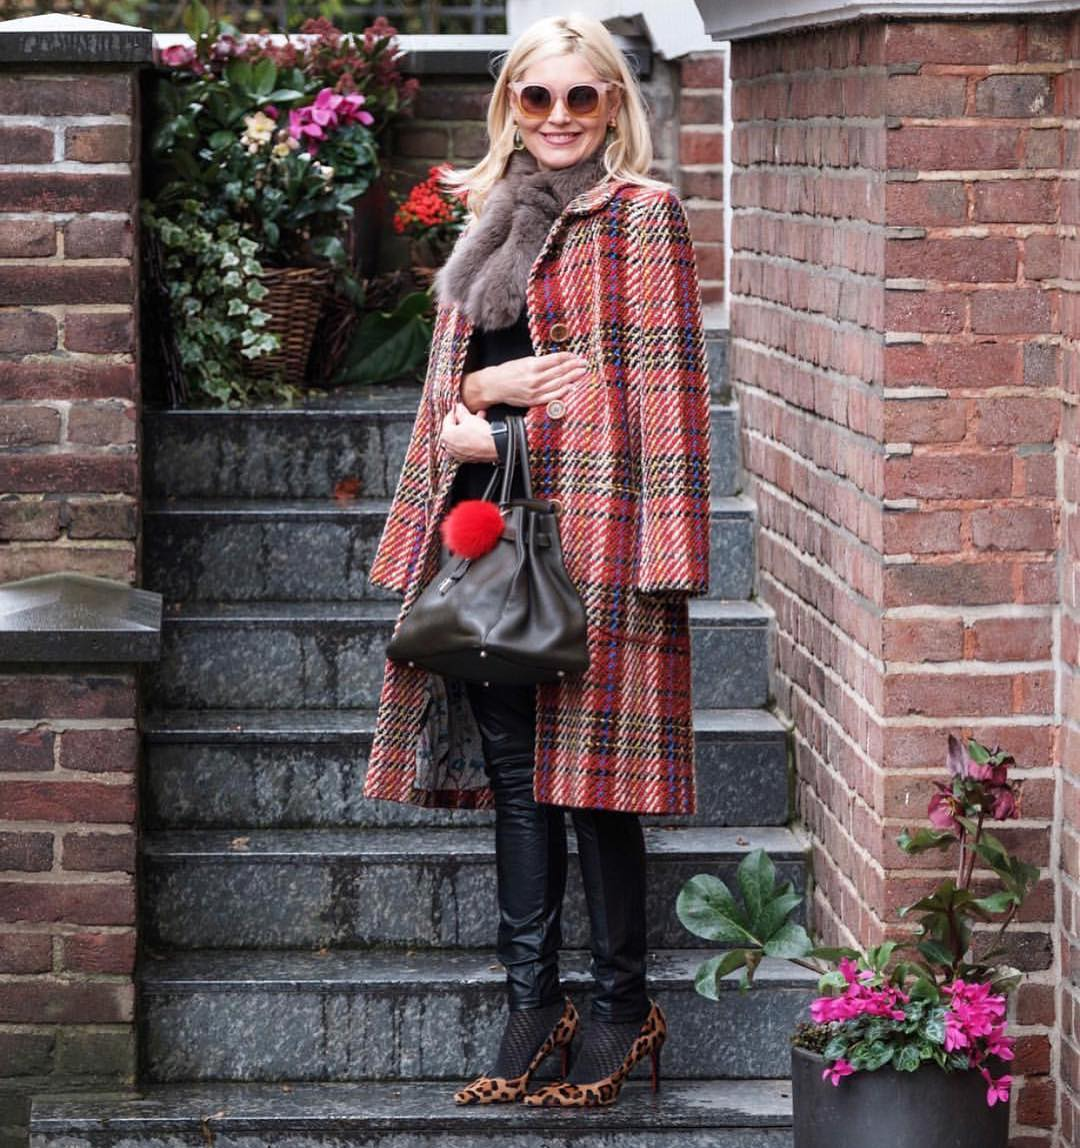 Perfect Fall Look For Weekends: Plaid Coat And Leopard Pumps 2021